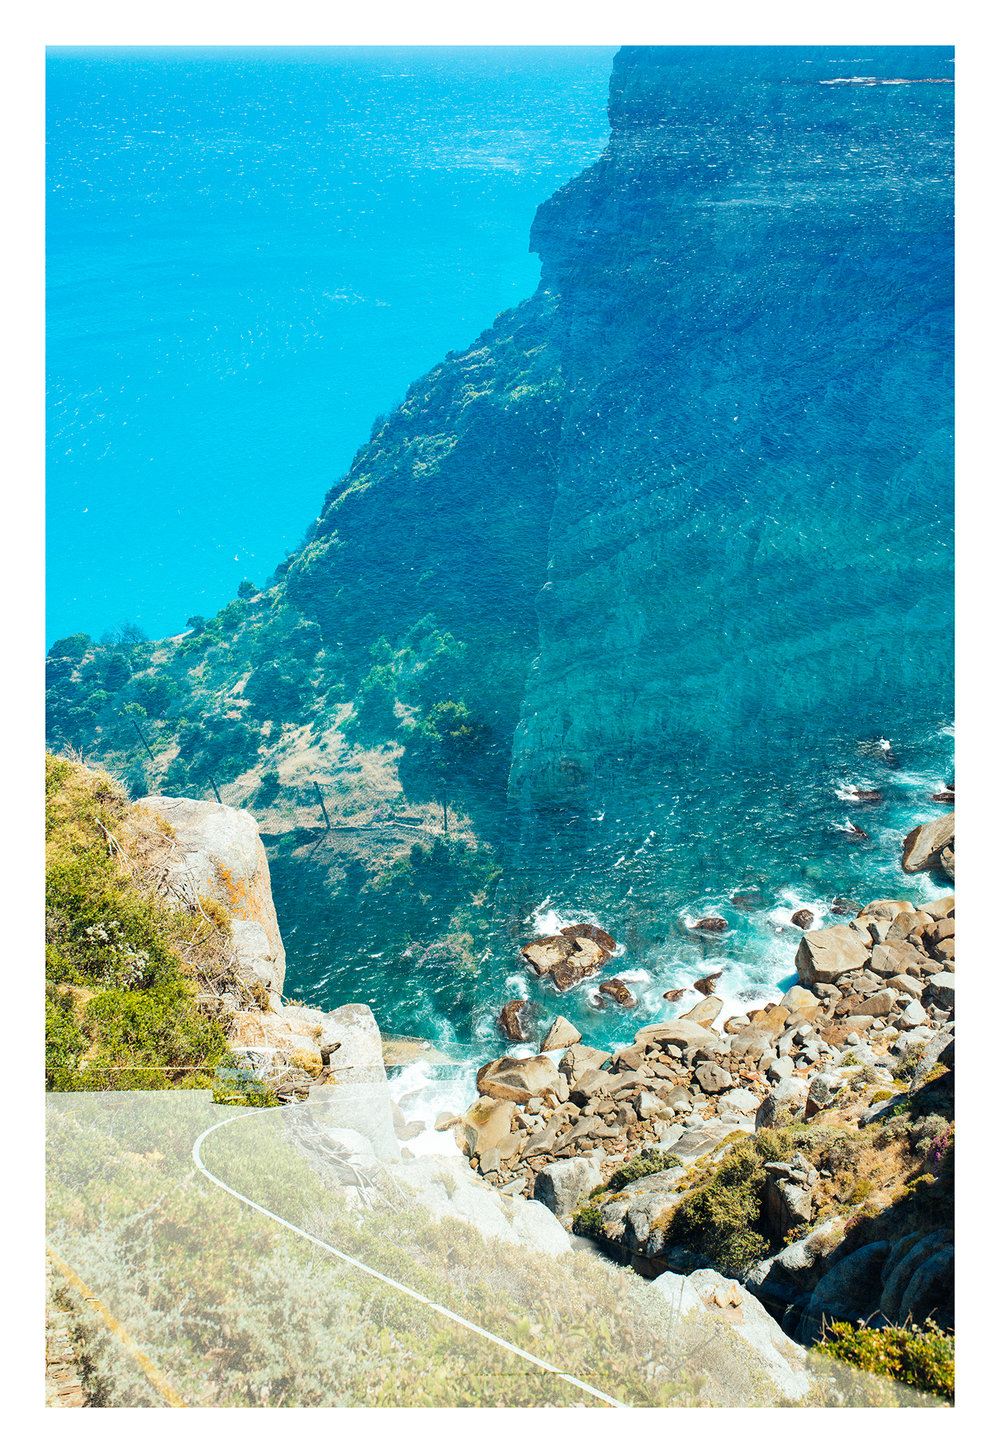 ' Chapman's Peak Illusion II'   Dylan Culhane  Giclee print on Hahnemühle  810 x 112 x 30 mm  Edition 2 of 10  R 10 500. 00 excl. vat